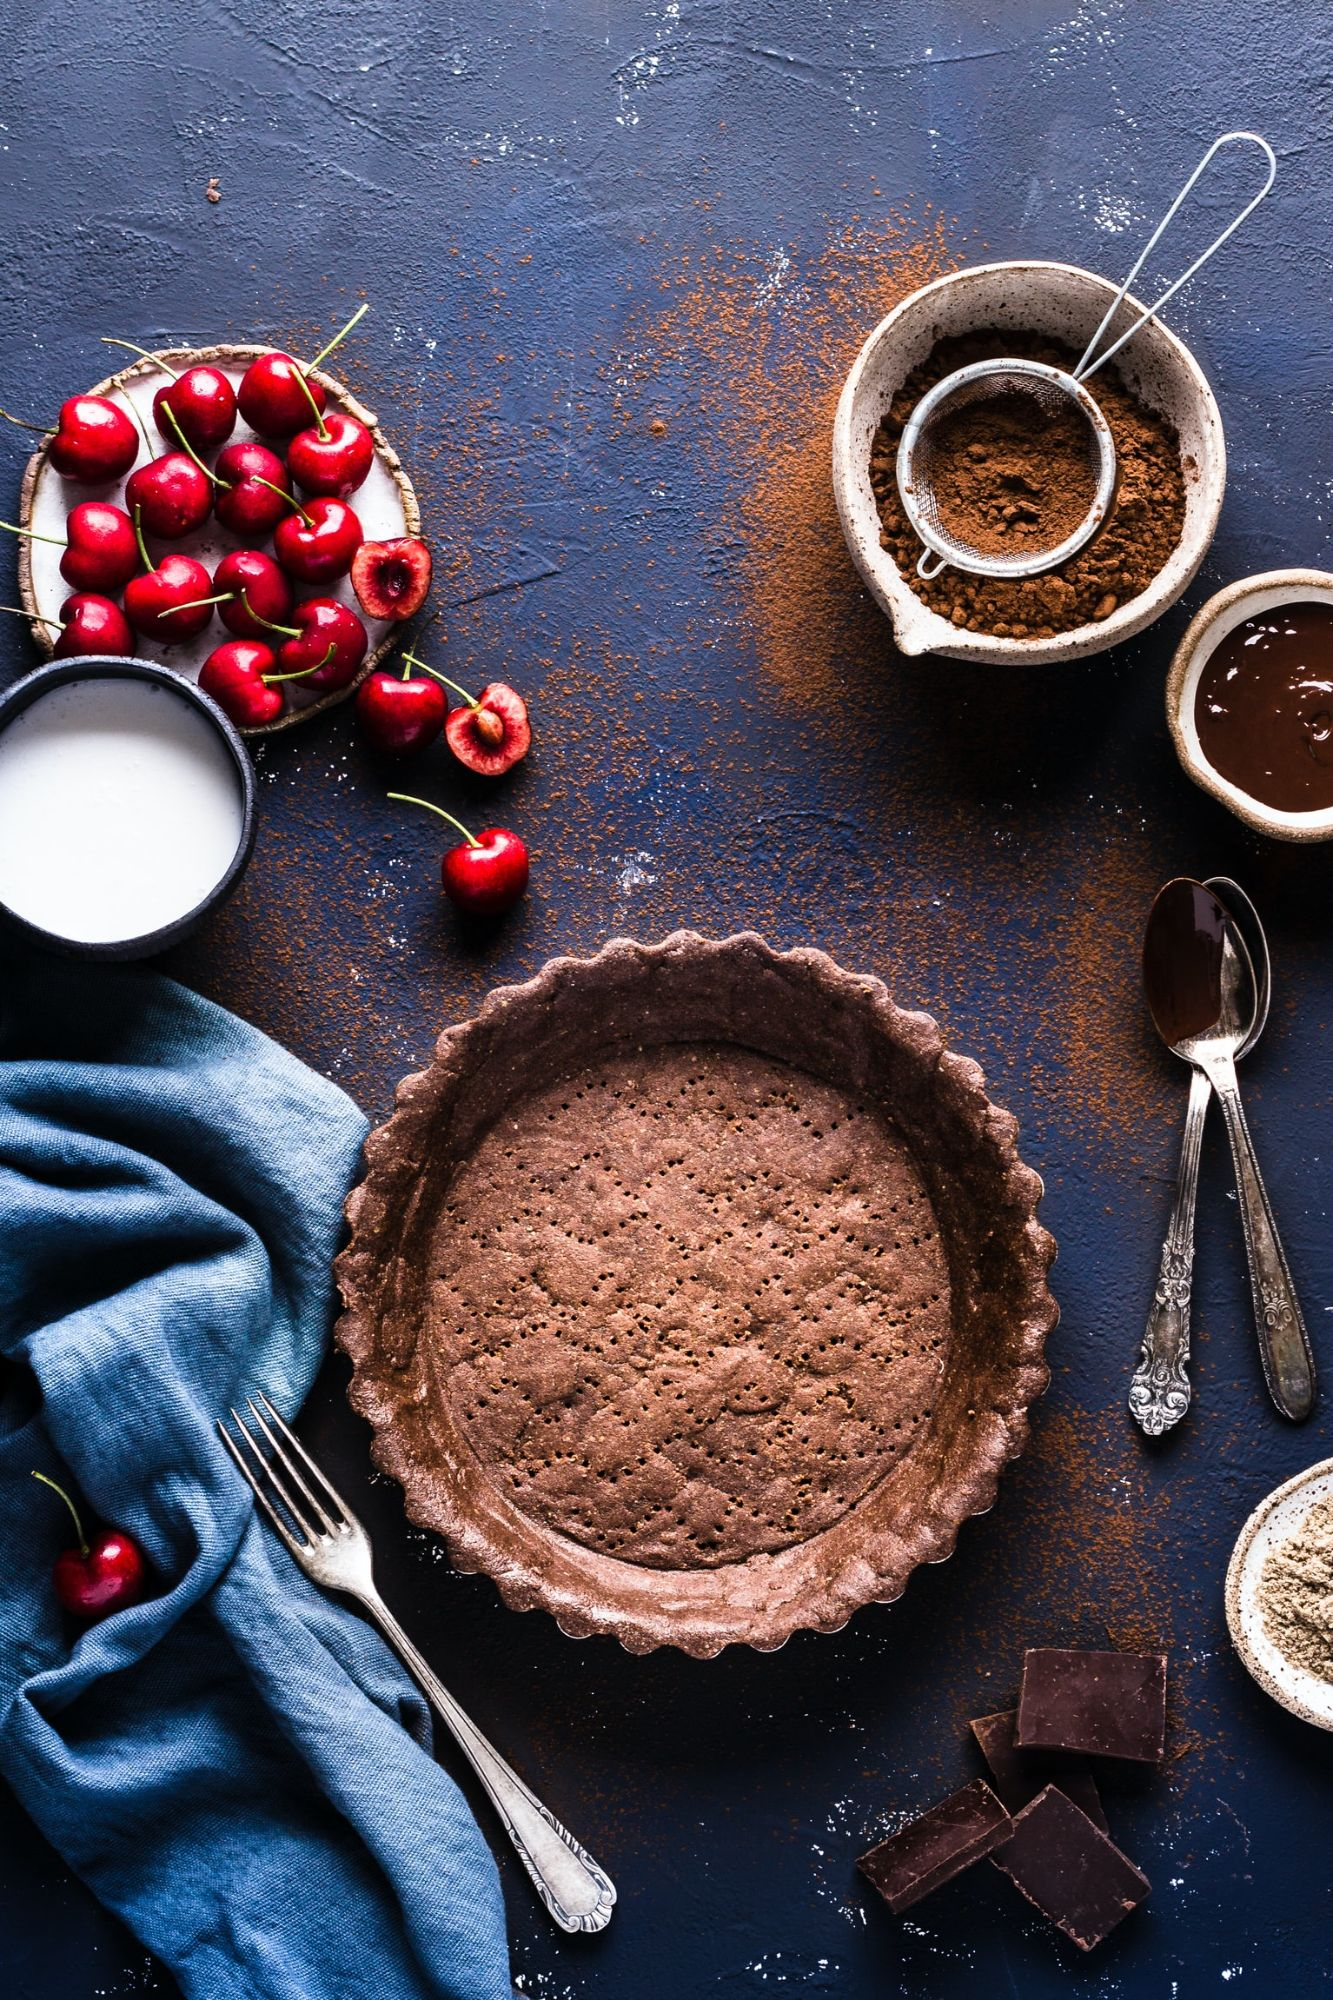 How to Make Chocolate Pastry